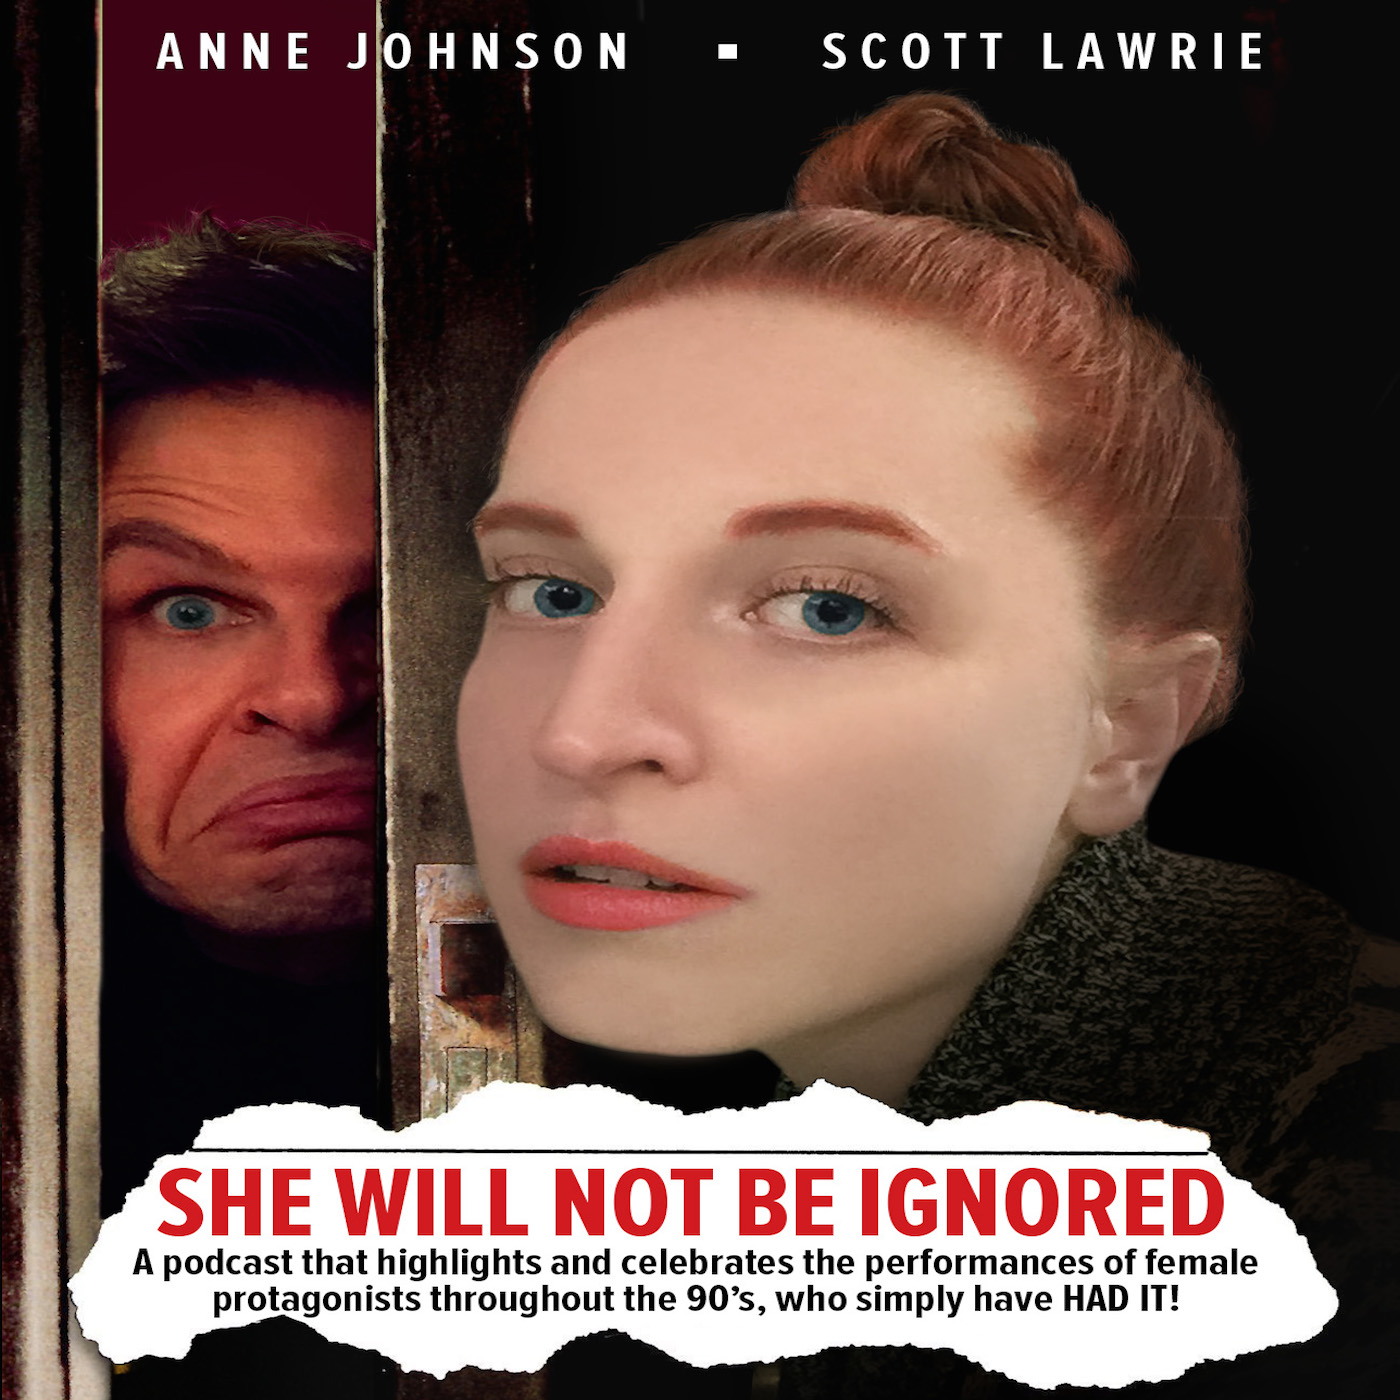 Podcasts - She Will Not Be Ignored